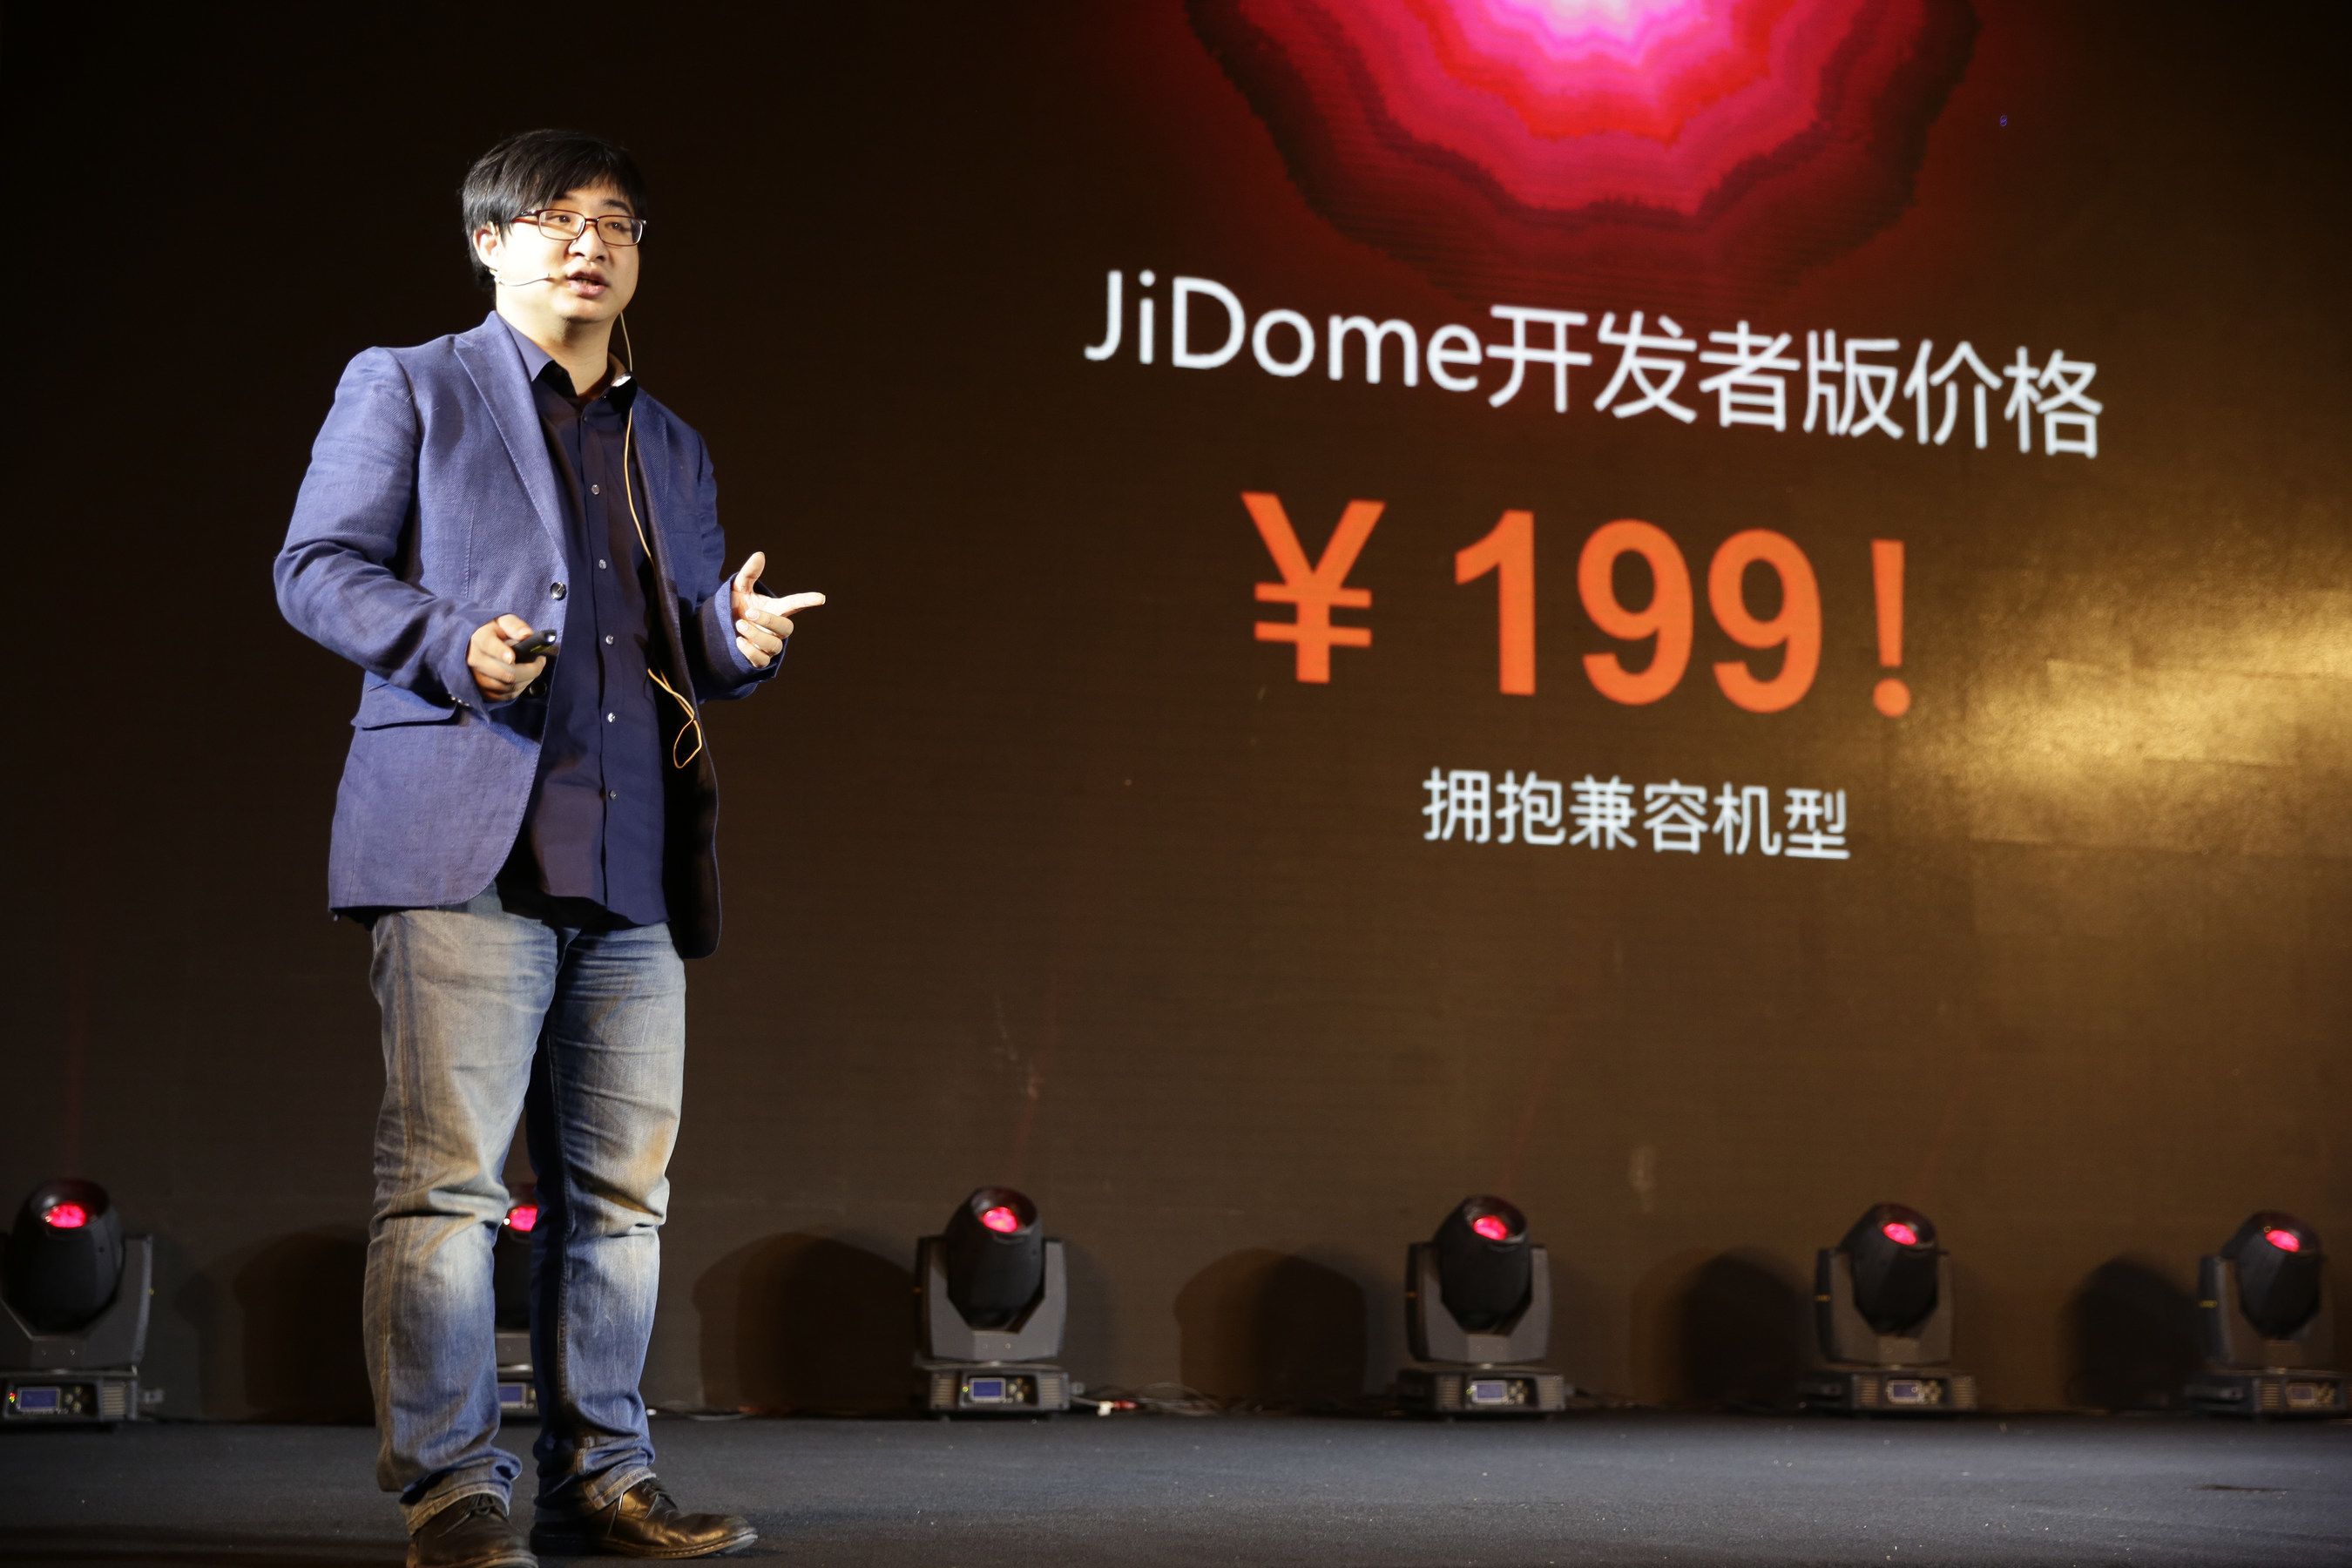 The GearVR-like product launched by FiresVR is priced at RMB199